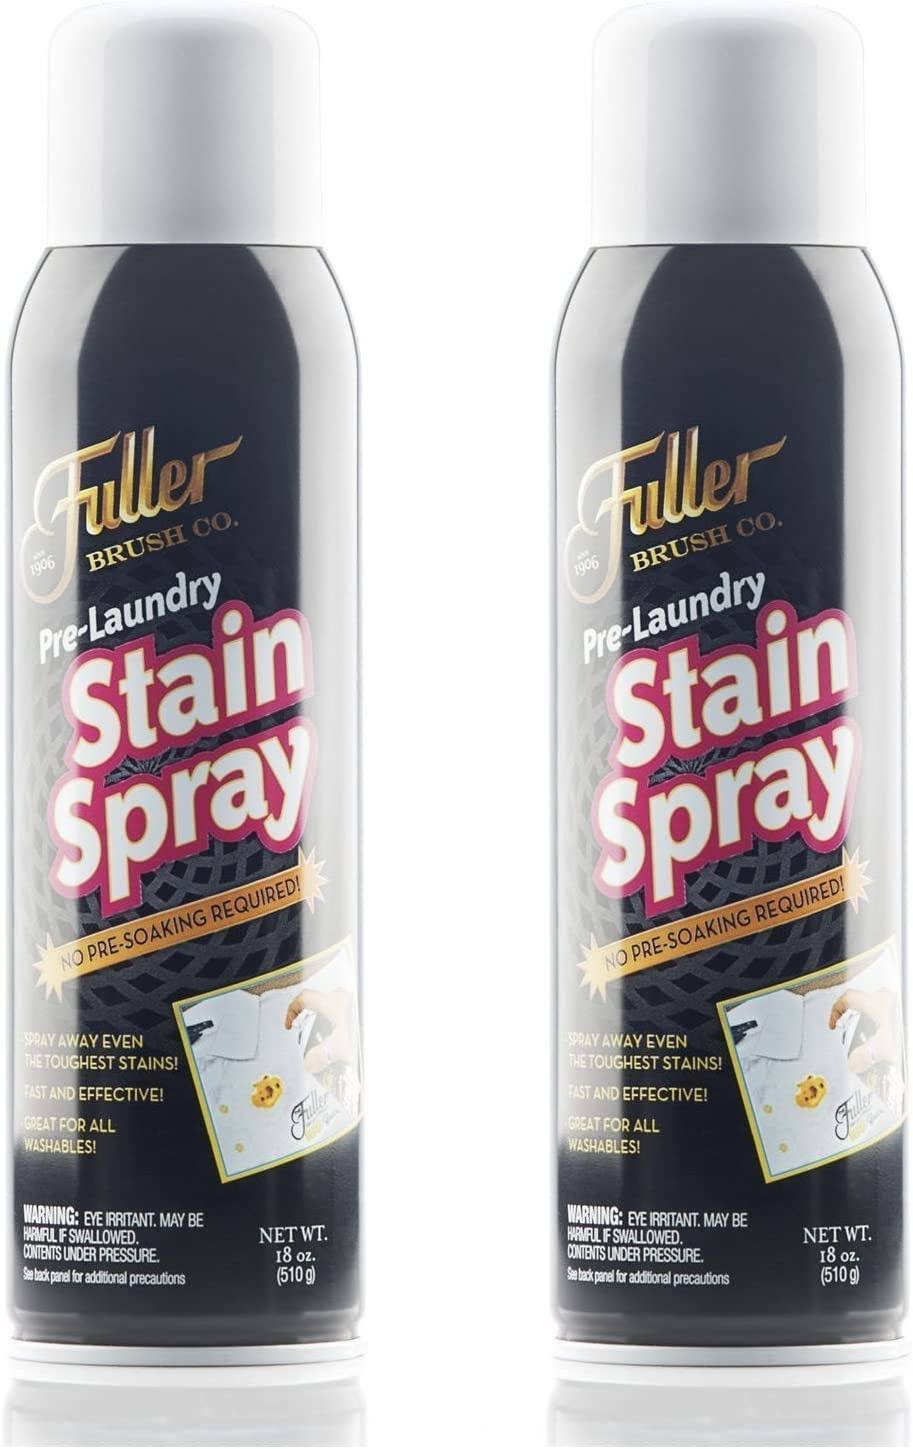 Fuller Brush Pre-Laundry Stain Spray- Dissolves The Toughest Stains – No Pre-Soaking Required - 18 oz. - 2 Pack